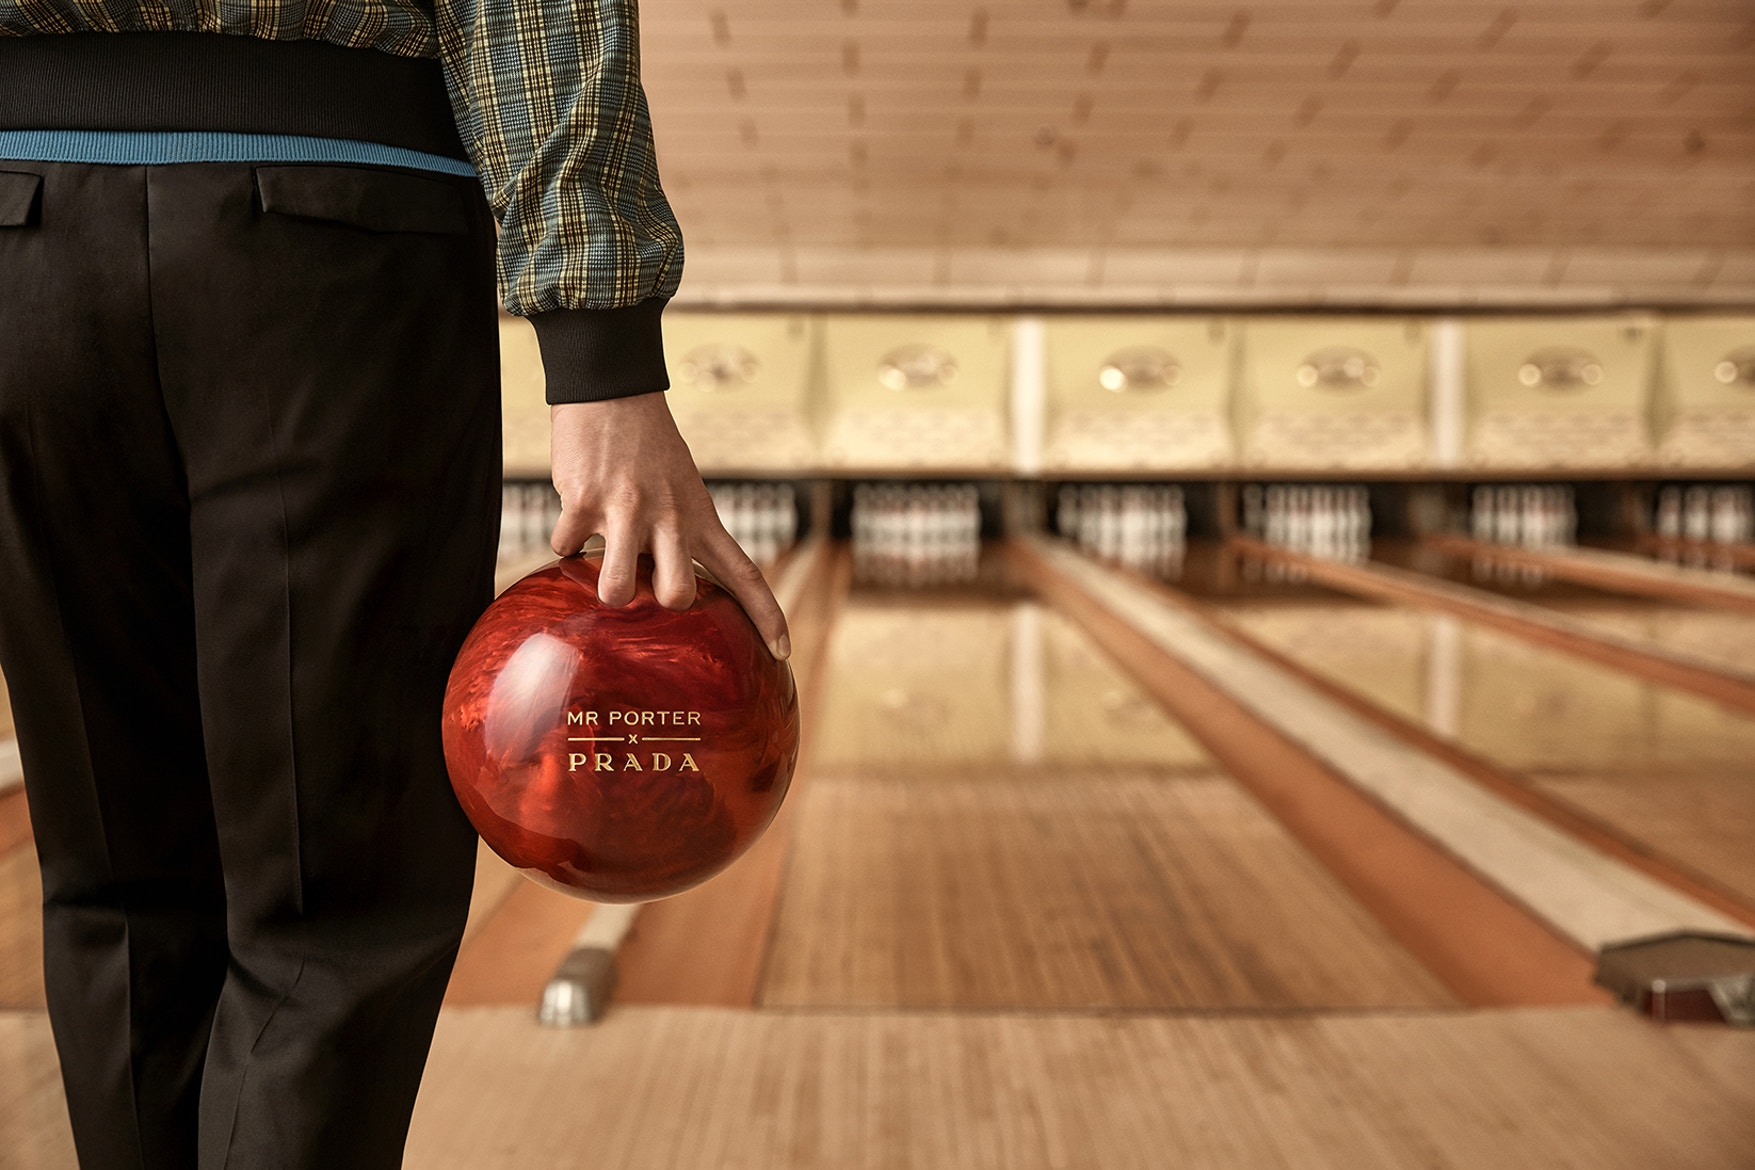 Prada and MR PORTER Draw Inspiration from Bowling in Exclusive Capsule